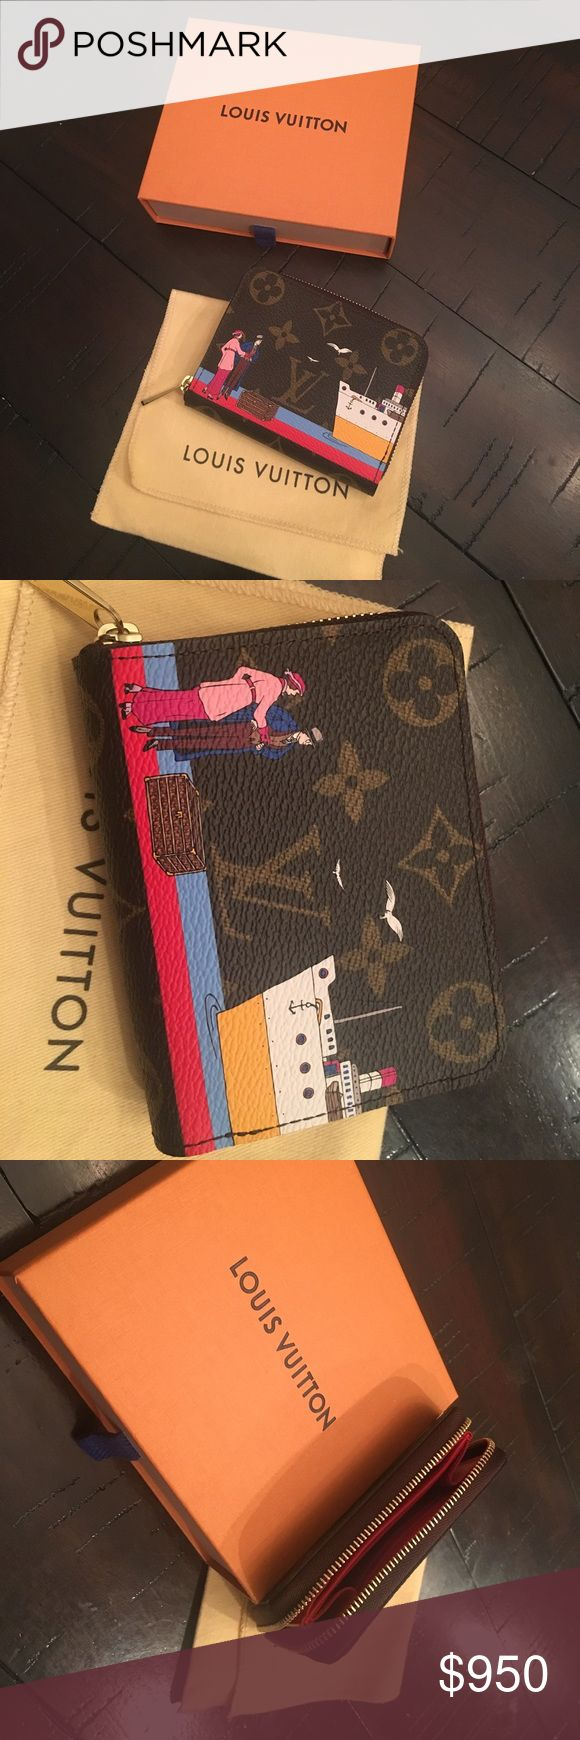 Louis Vuitton Coin Purse Brand new Louis Vuitton Coin Purse. Never used. Limited edition from 2016. Louis Vuitton Accessories Key & Card Holders